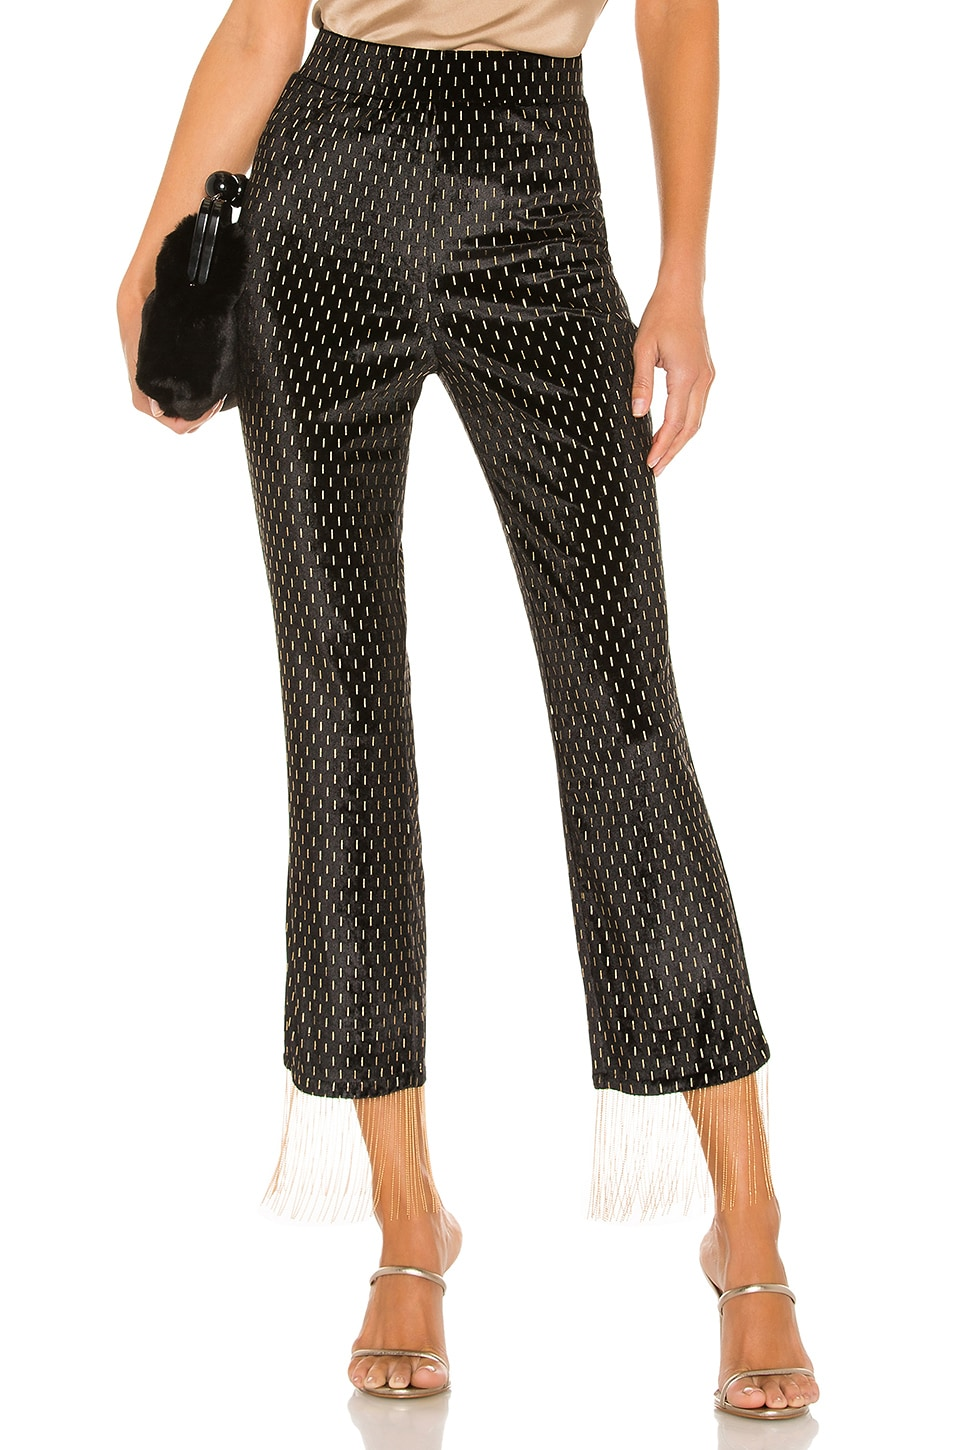 House of Harlow 1960 x REVOLVE Catina Pant in Noir & Gold